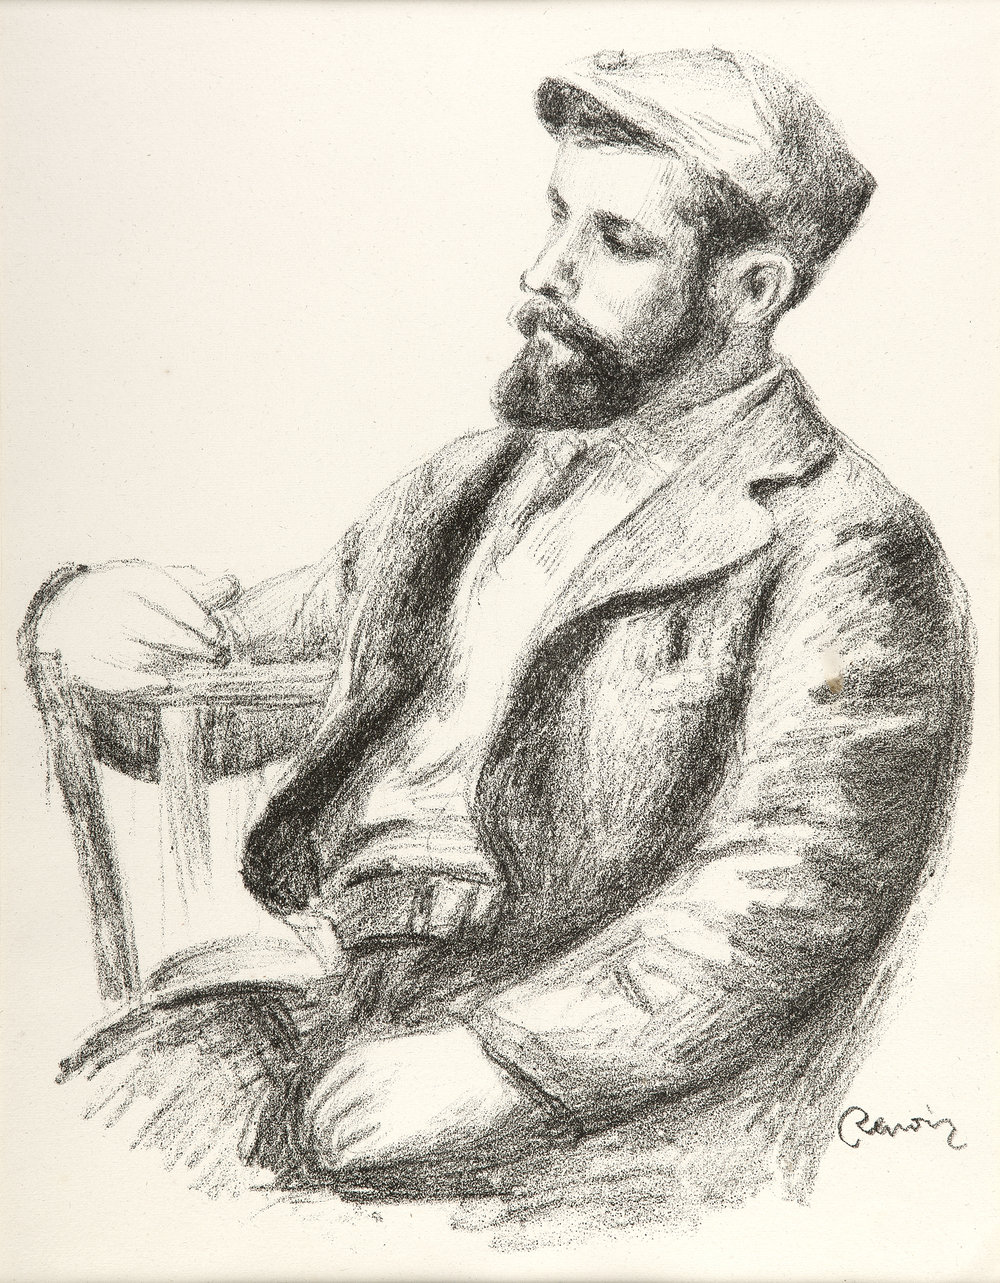 Pierre Auguste Renoir, Louis Valtat, 1904, Lithograph, 20.6 x 23.4 inches, Courtesy of The Art Company.